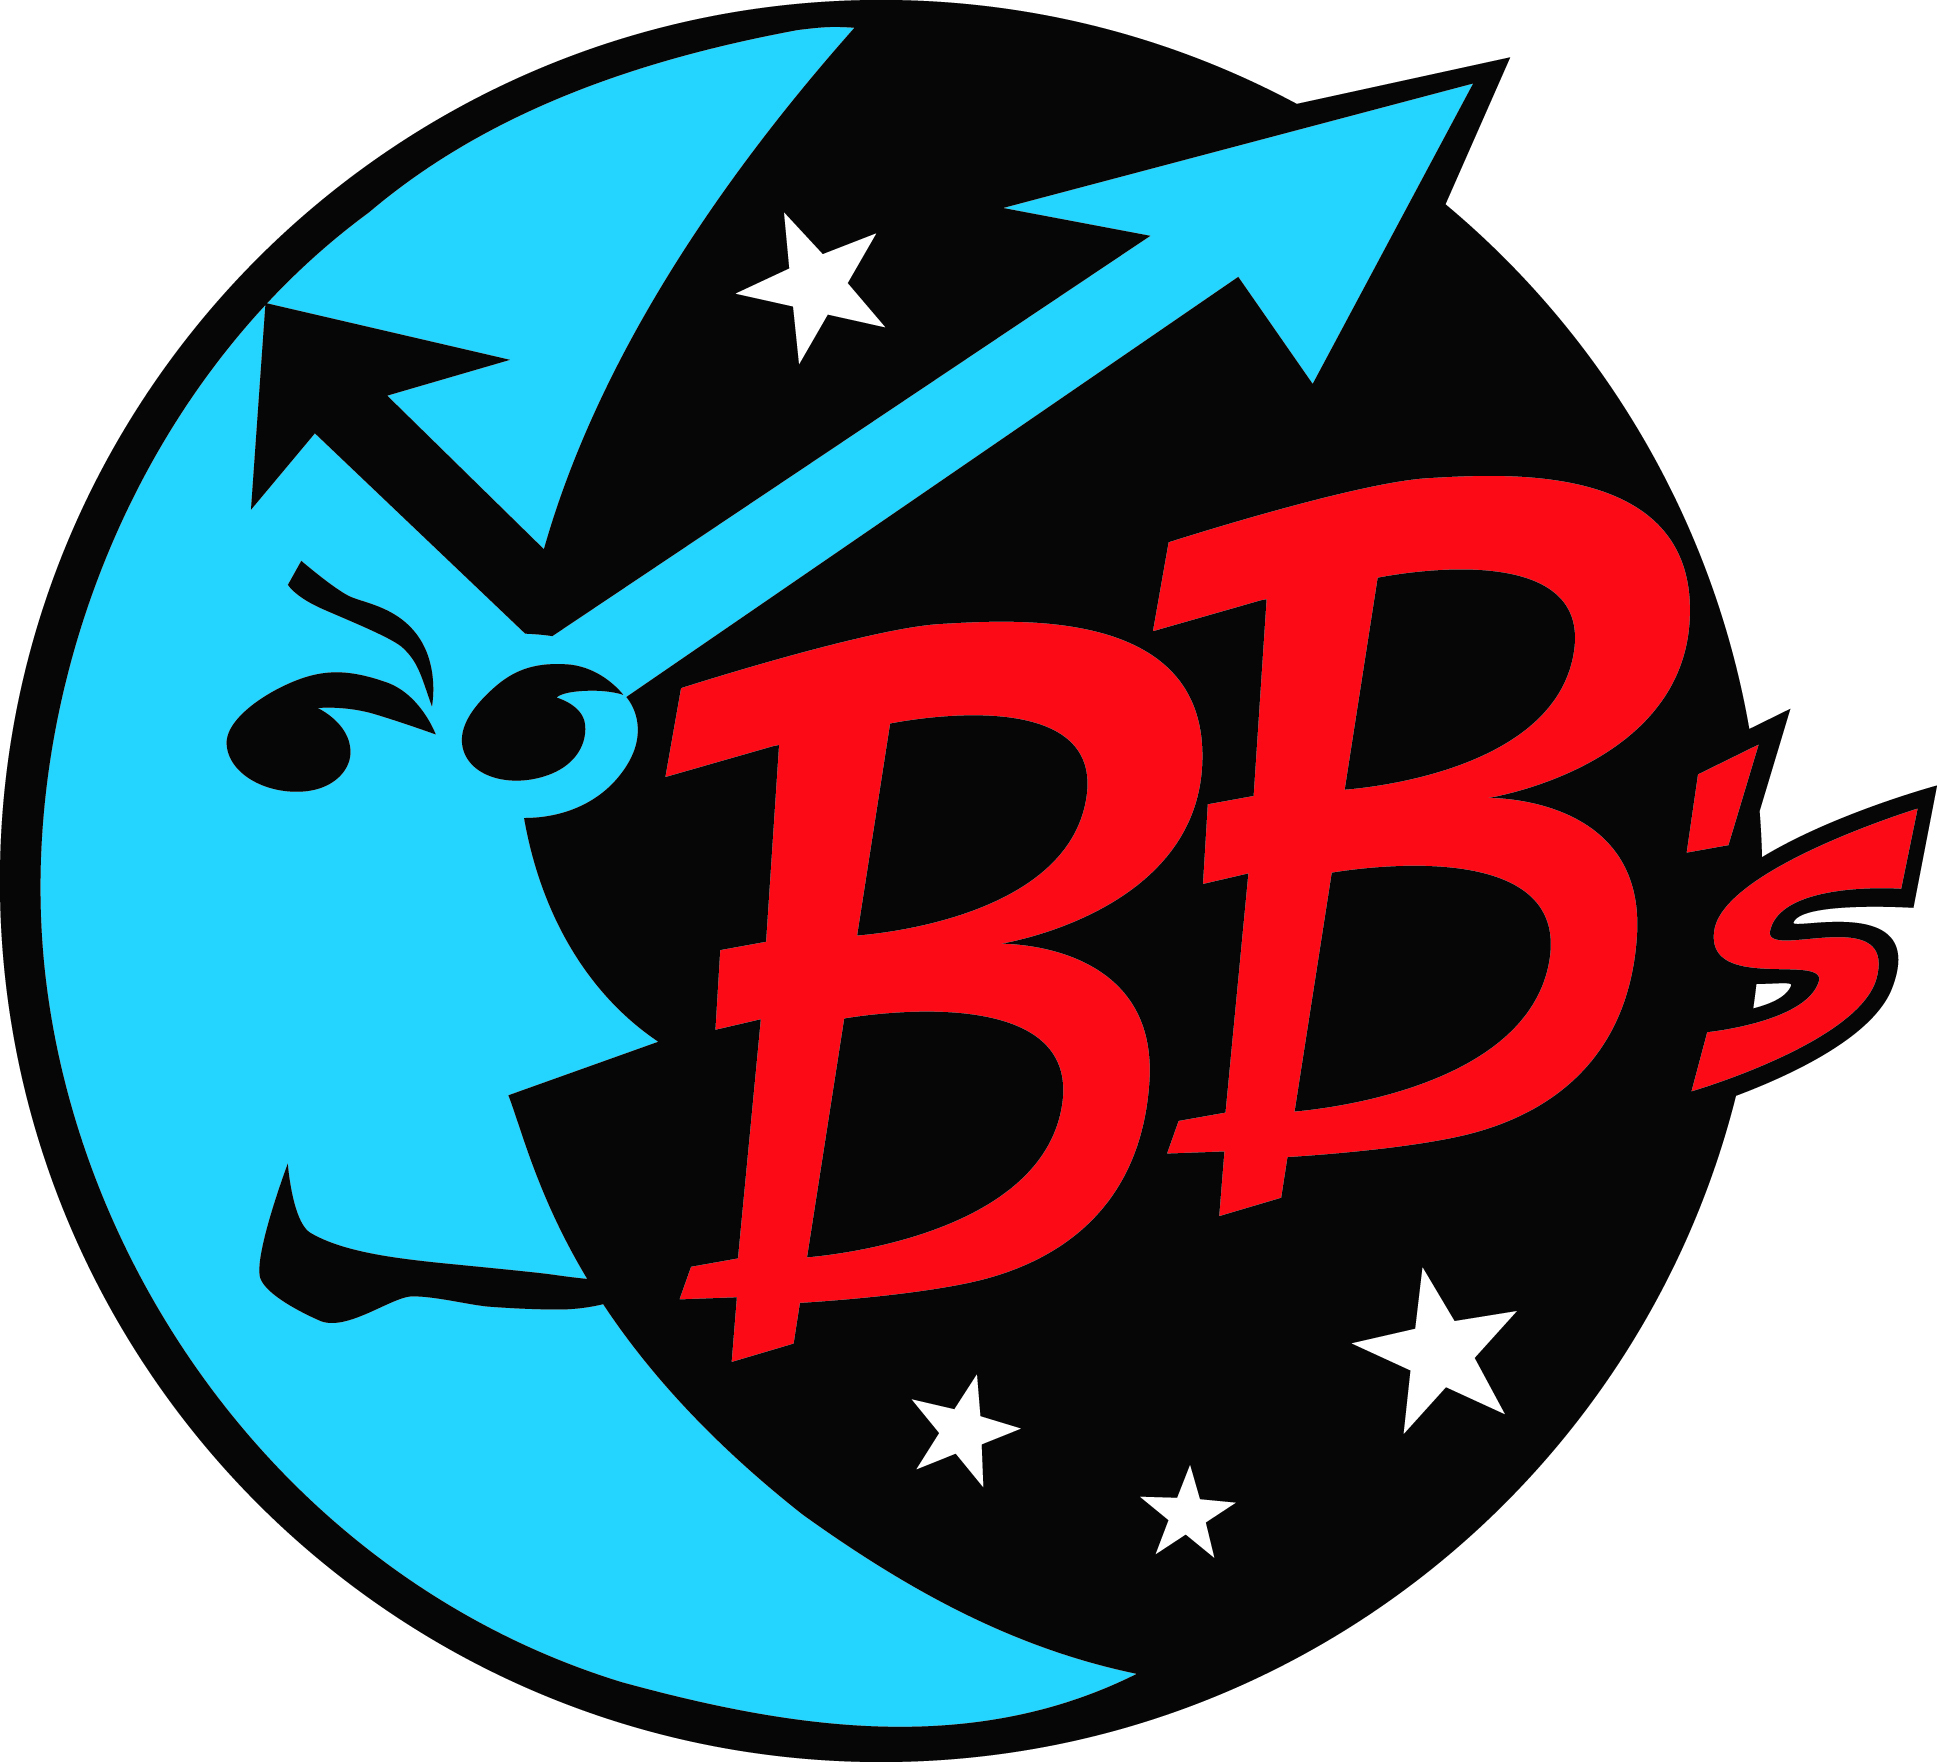 BB&#39;s logo